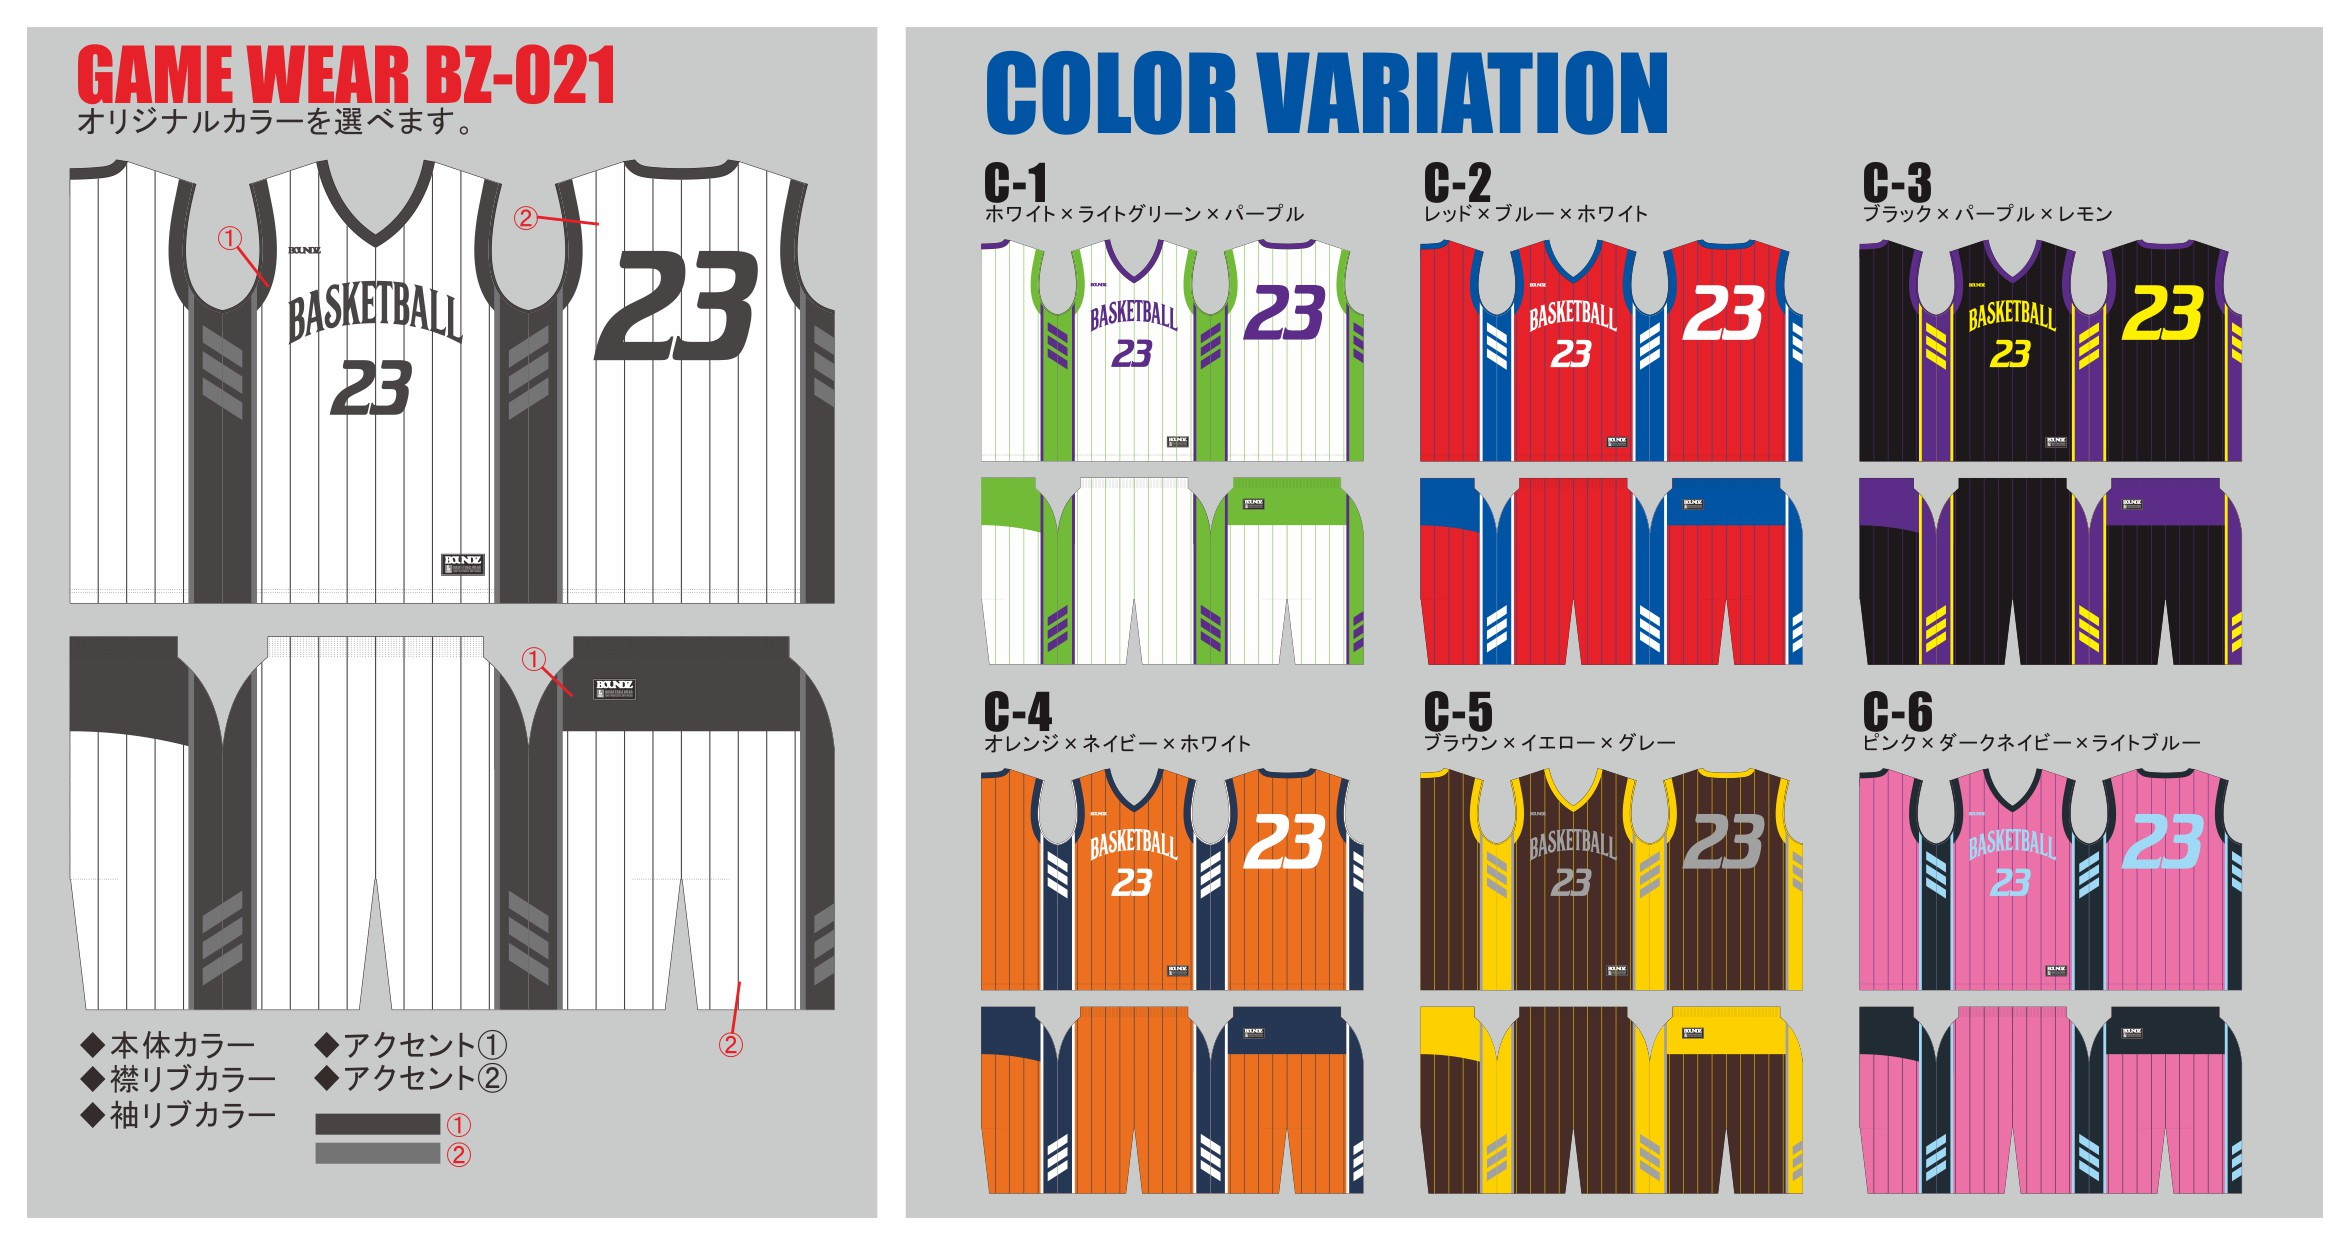 GAME_WEAR_BZ021_color